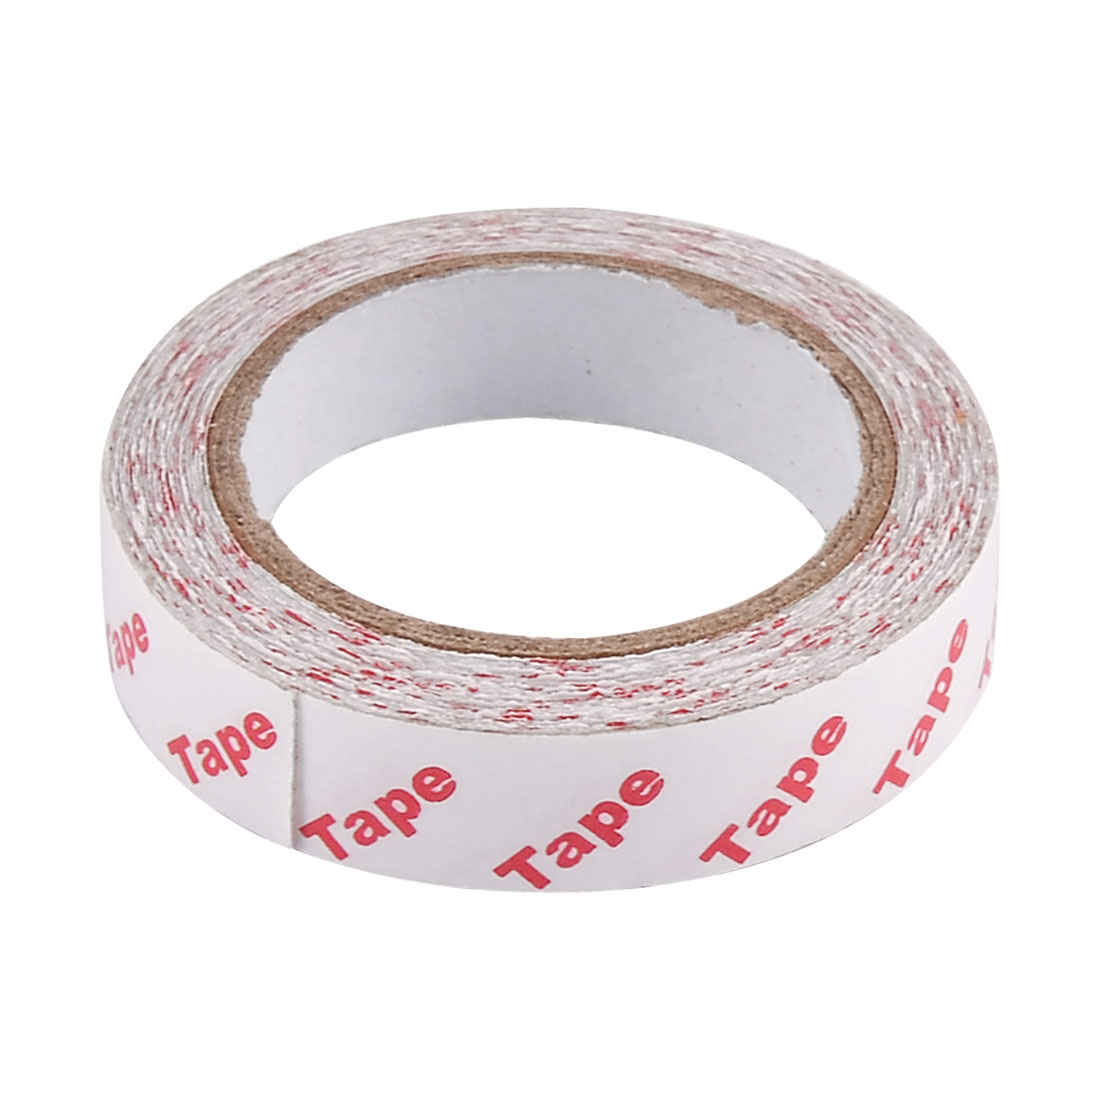 Edge Guard Cushion Protector Double-Sided Adhesive Tape 4M 14Ft Long